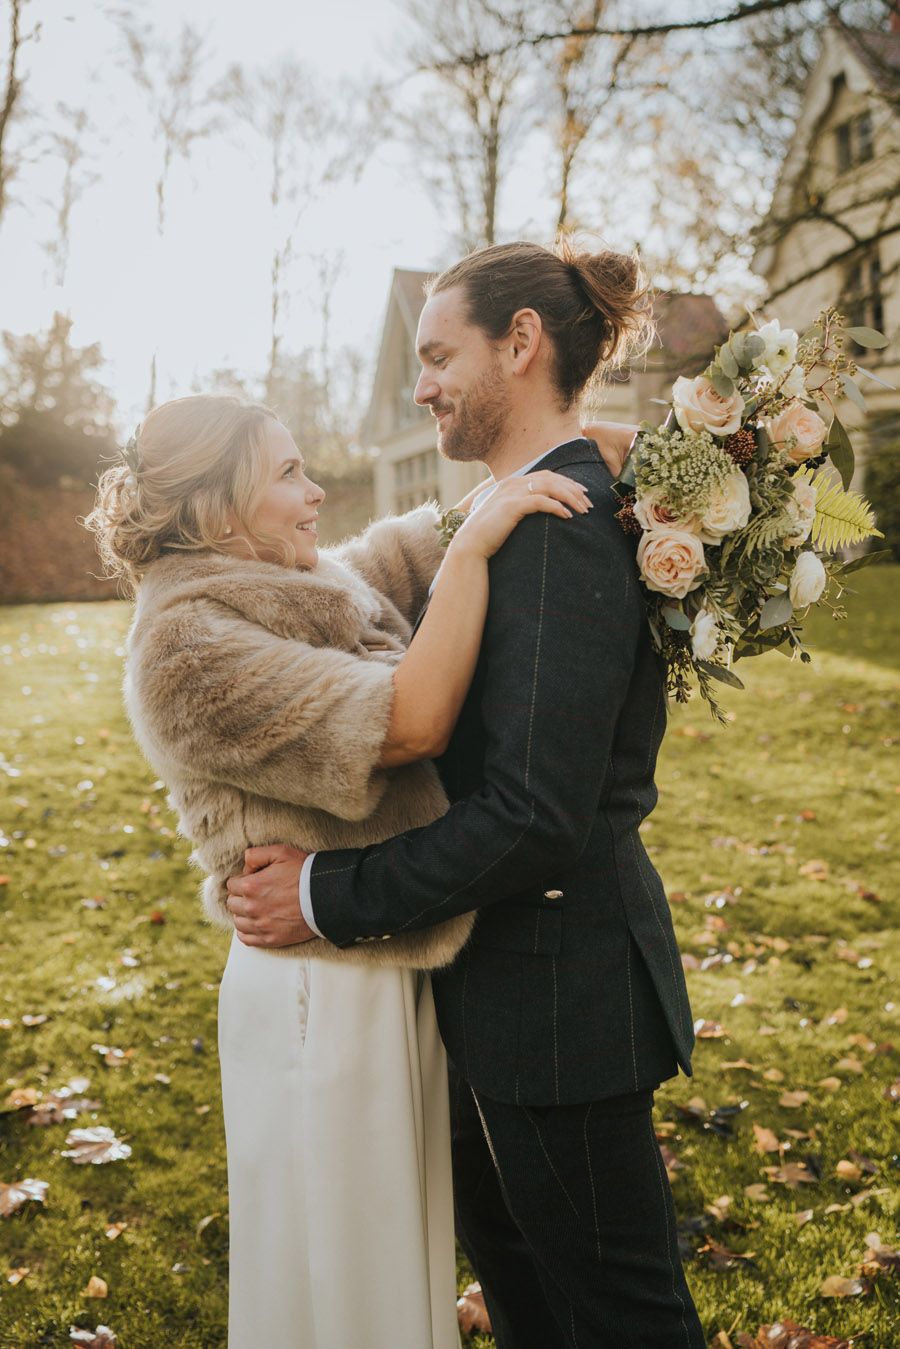 Susanna & Kieran's intimate, chic and modern wedding with Grace Elizabeth (34)